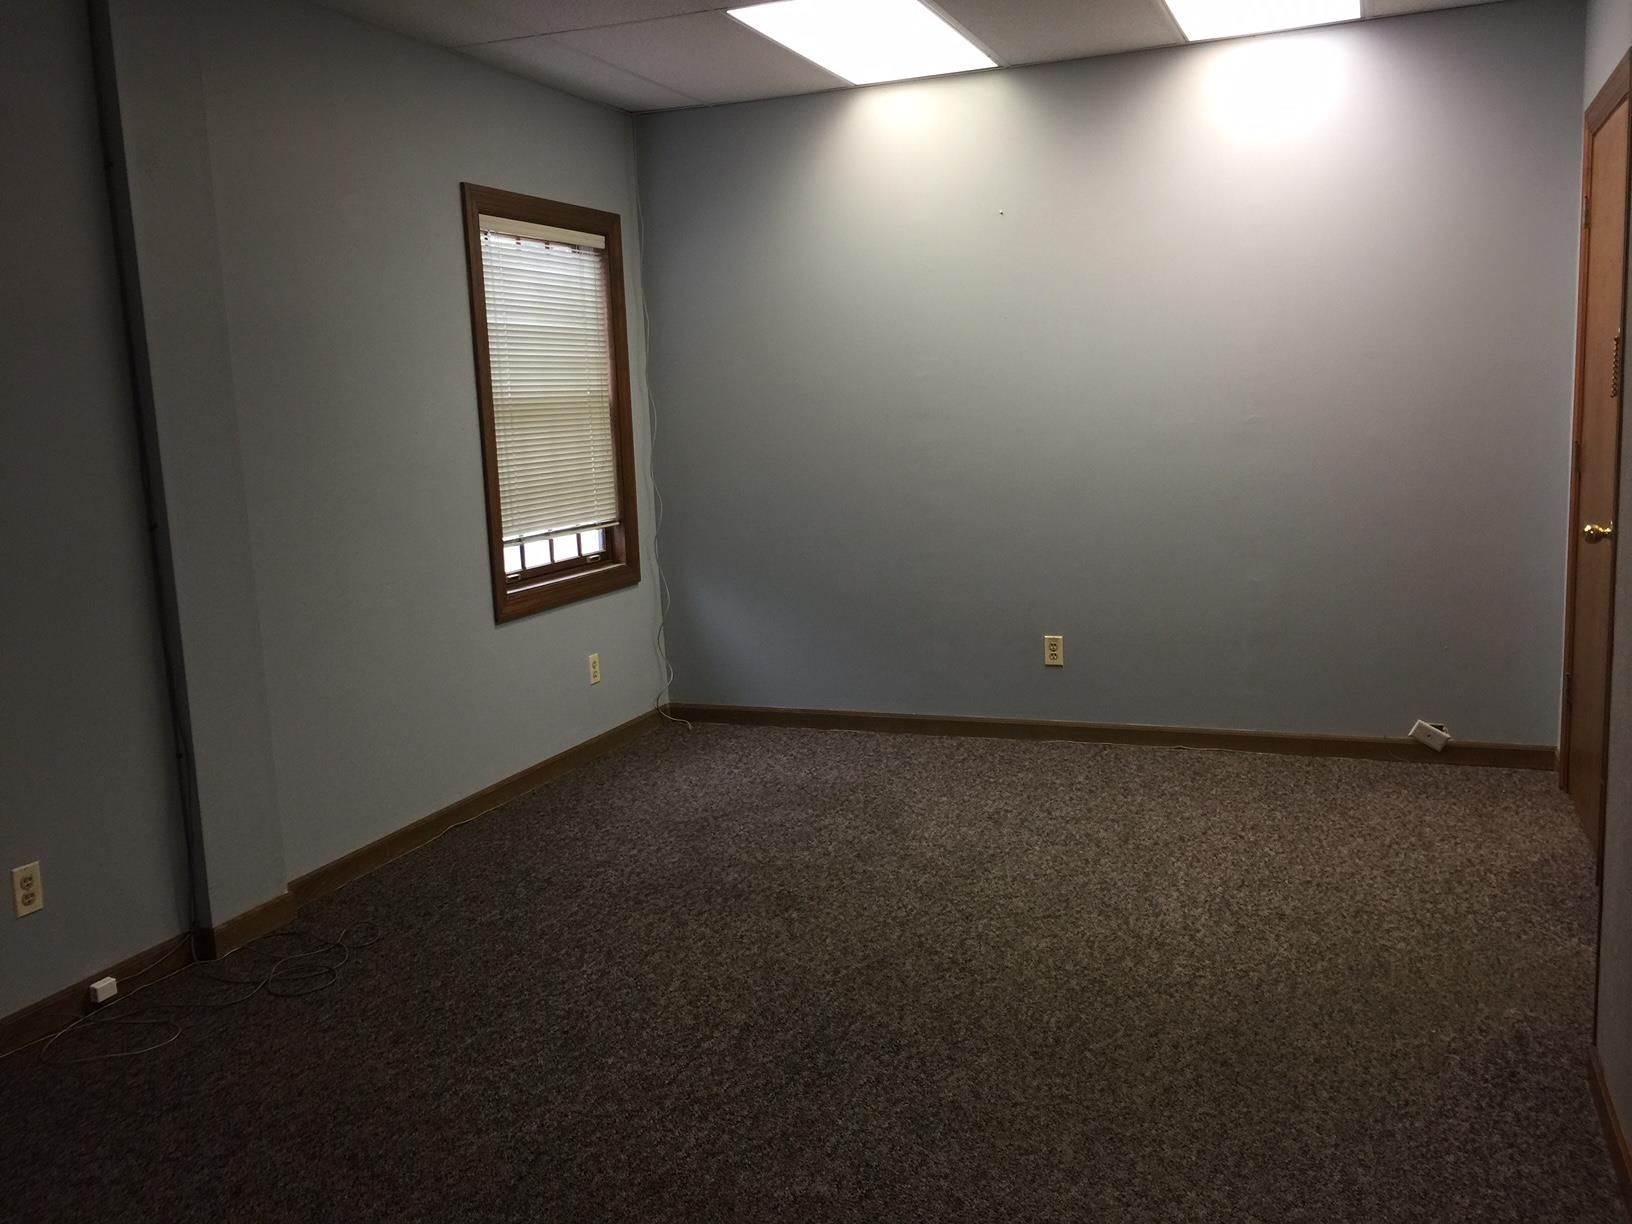 Heritage Village Building - Office Suite 103 and 104